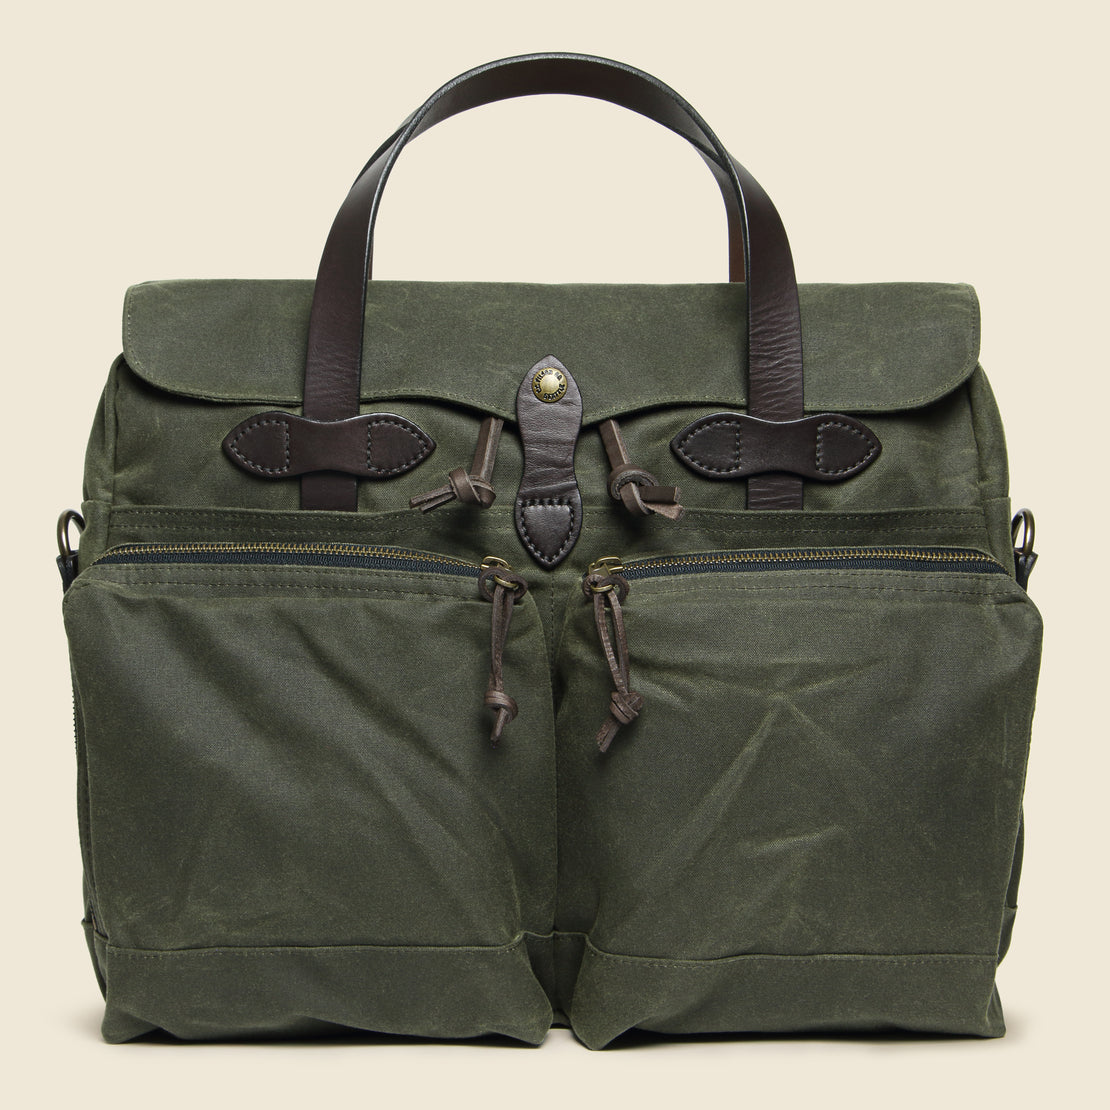 Filson 24 Hour Tin Briefcase - Otter Green